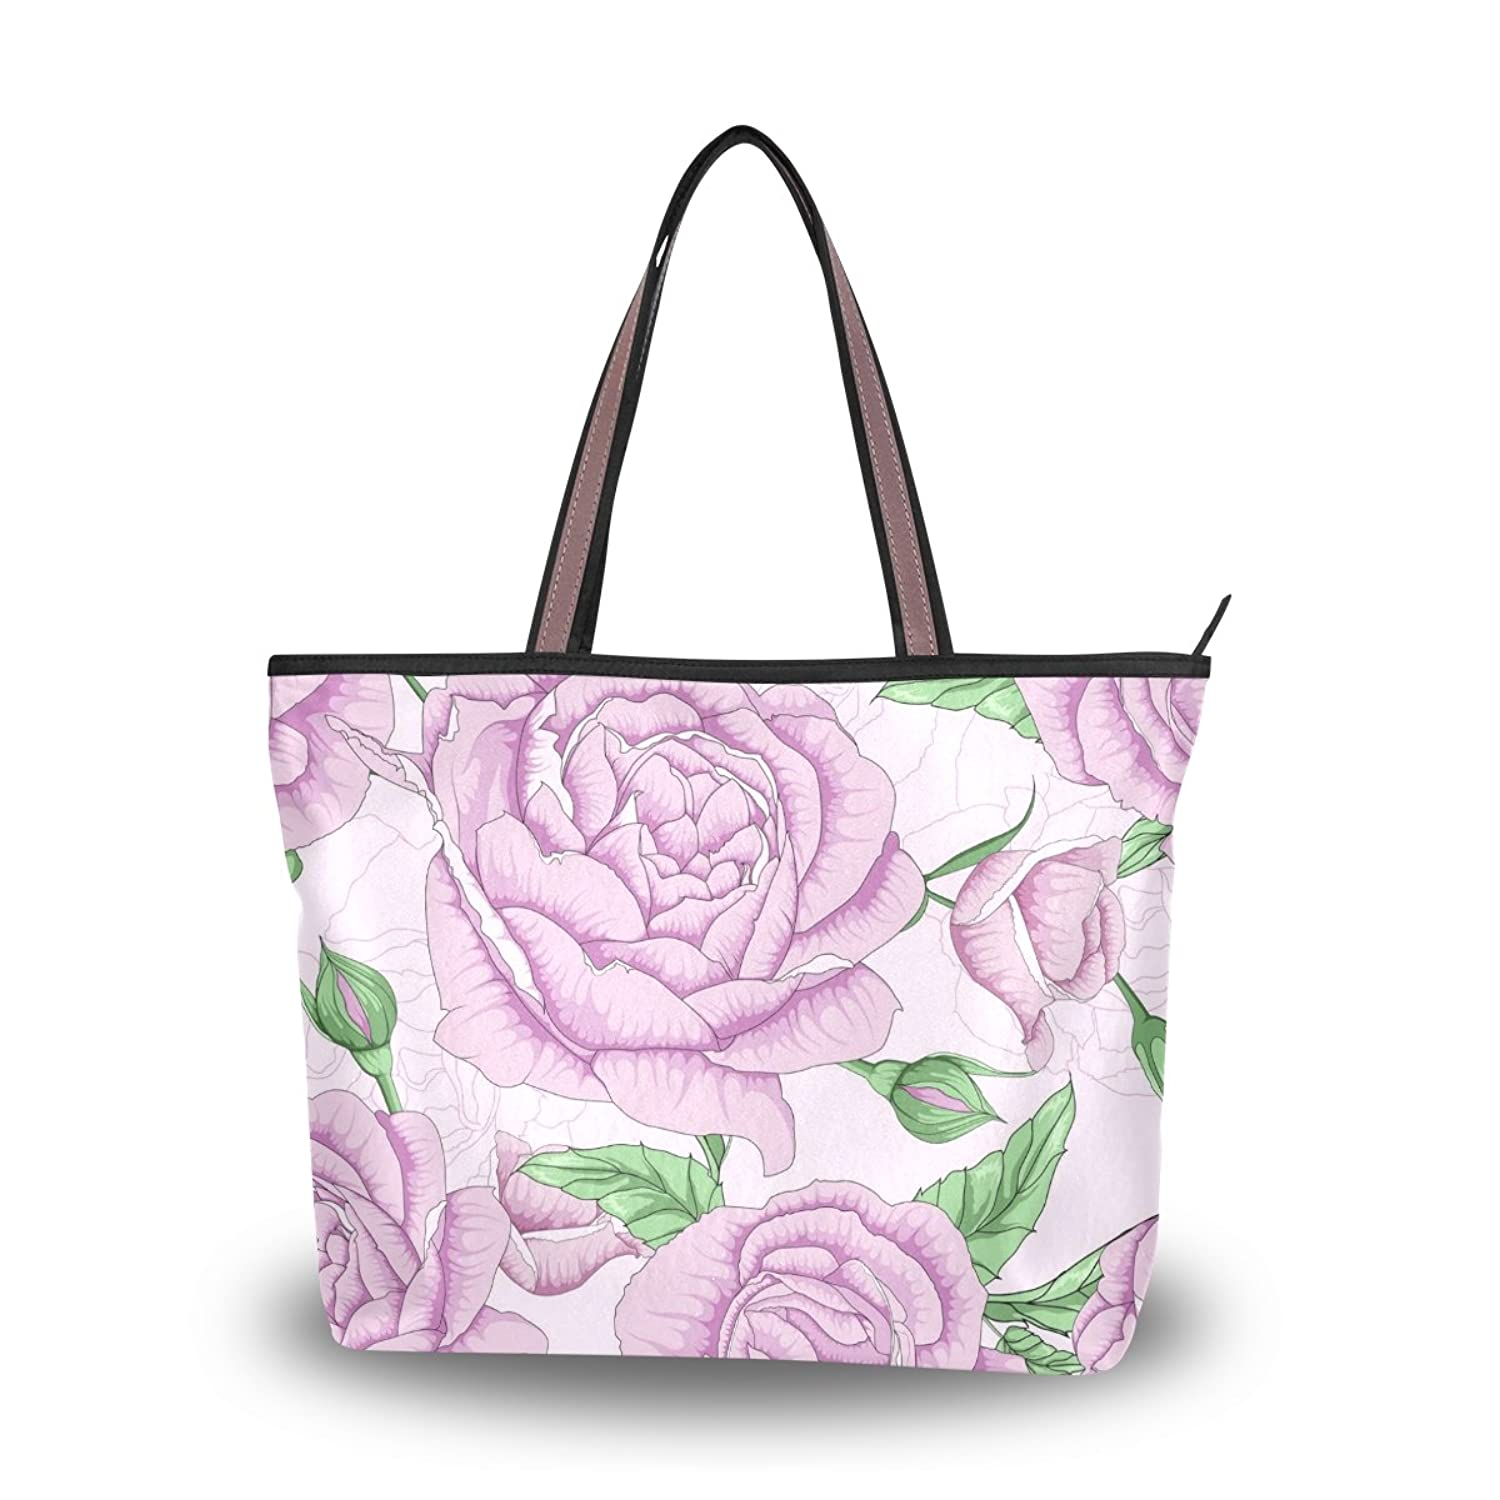 Senya Women's Handbag Microfiber Large Tote Shoulder Bag, Floral Pattern